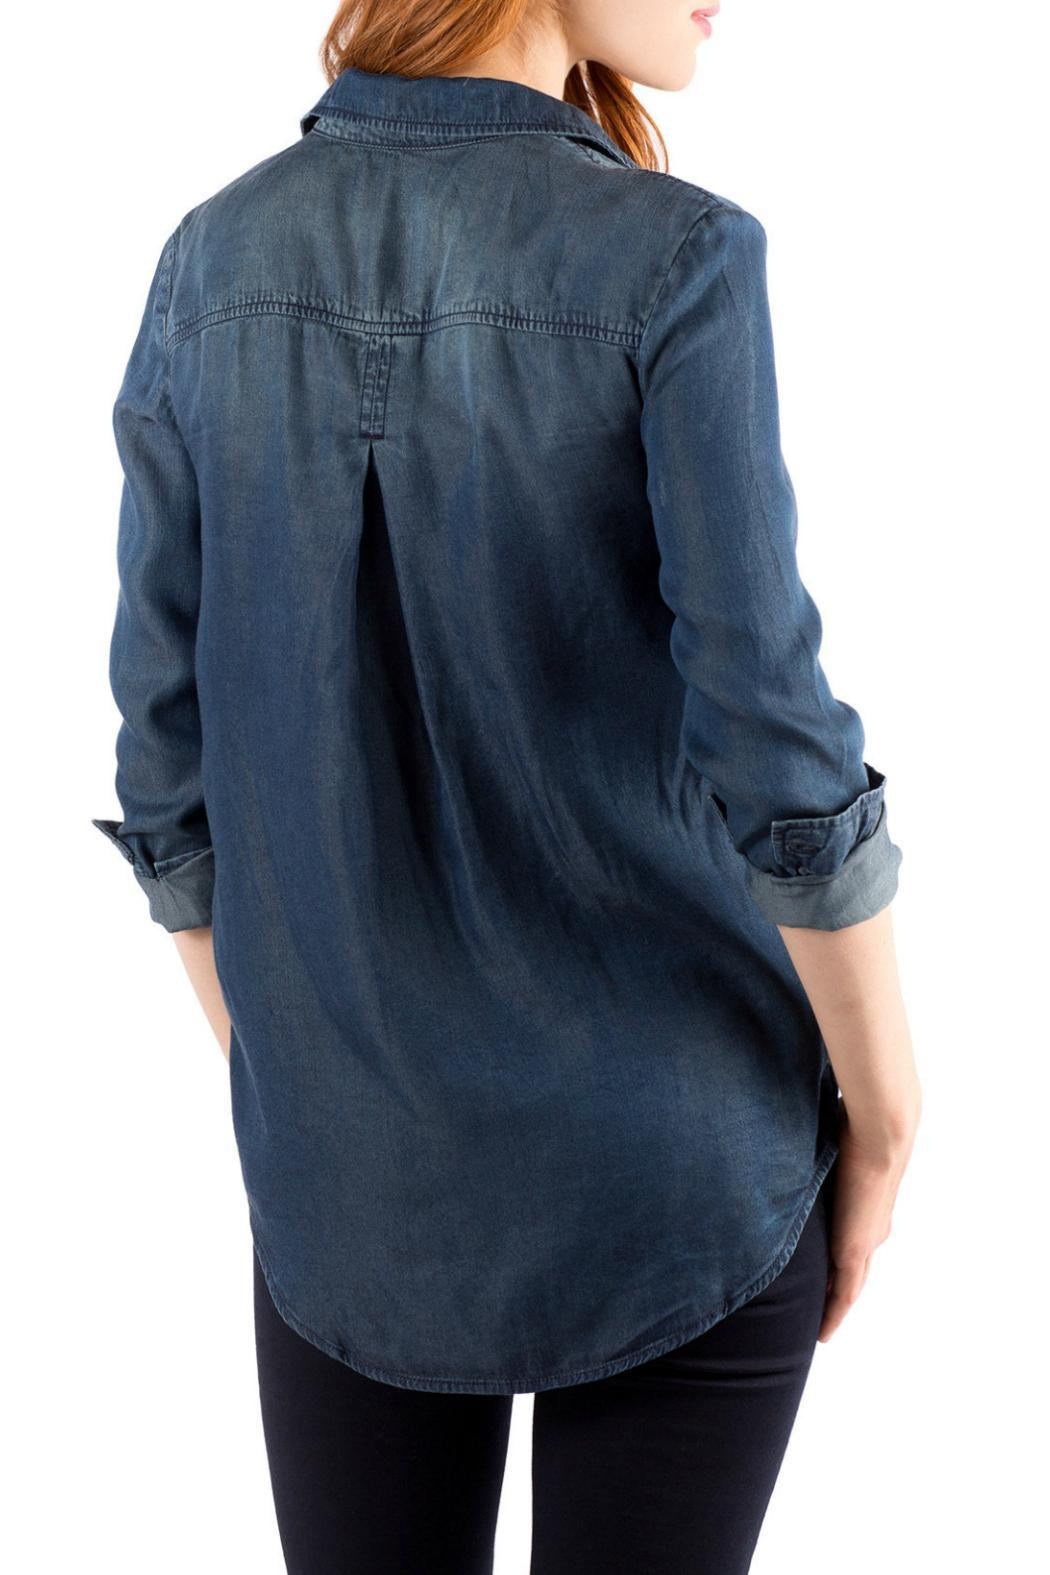 Downeast Basics Mountain Blue Top - Front Full Image